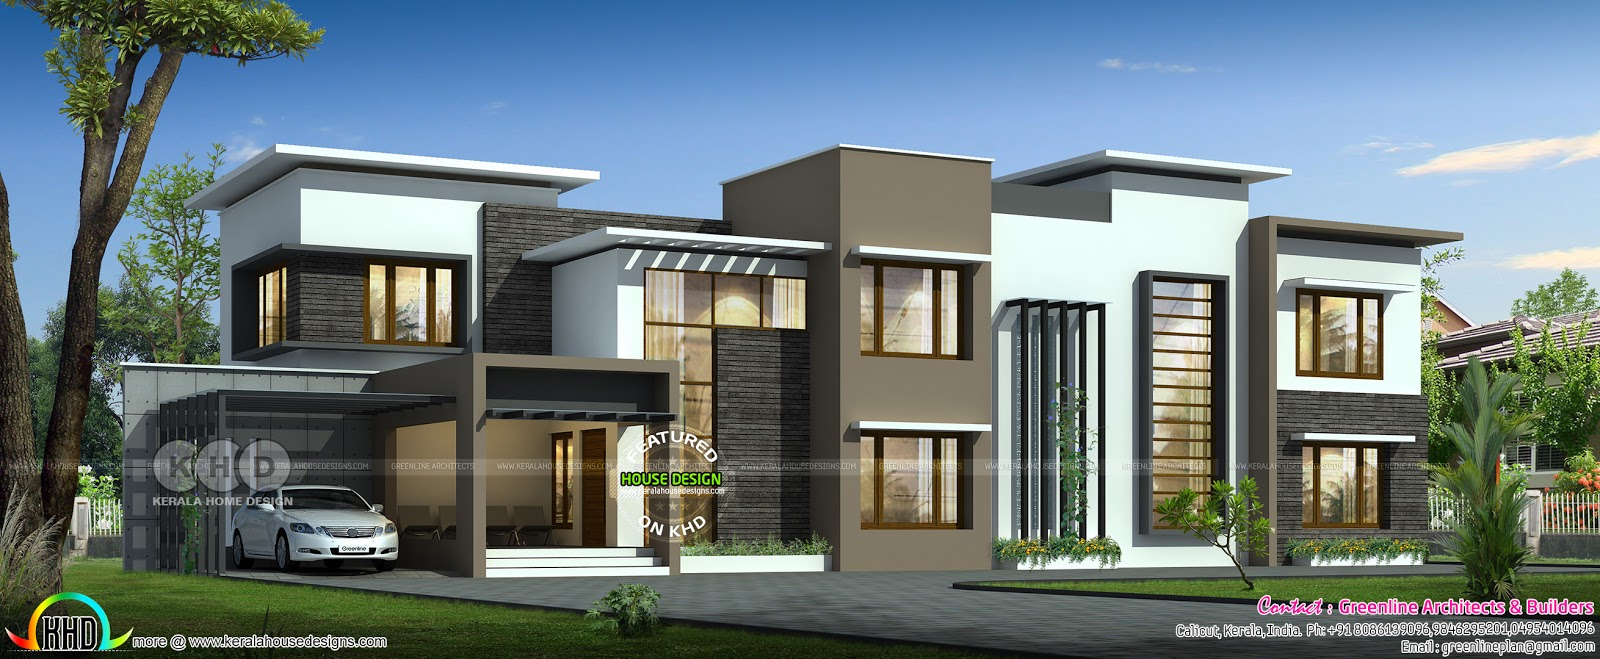 3950 square feet 5 bedroom wide flat roof house